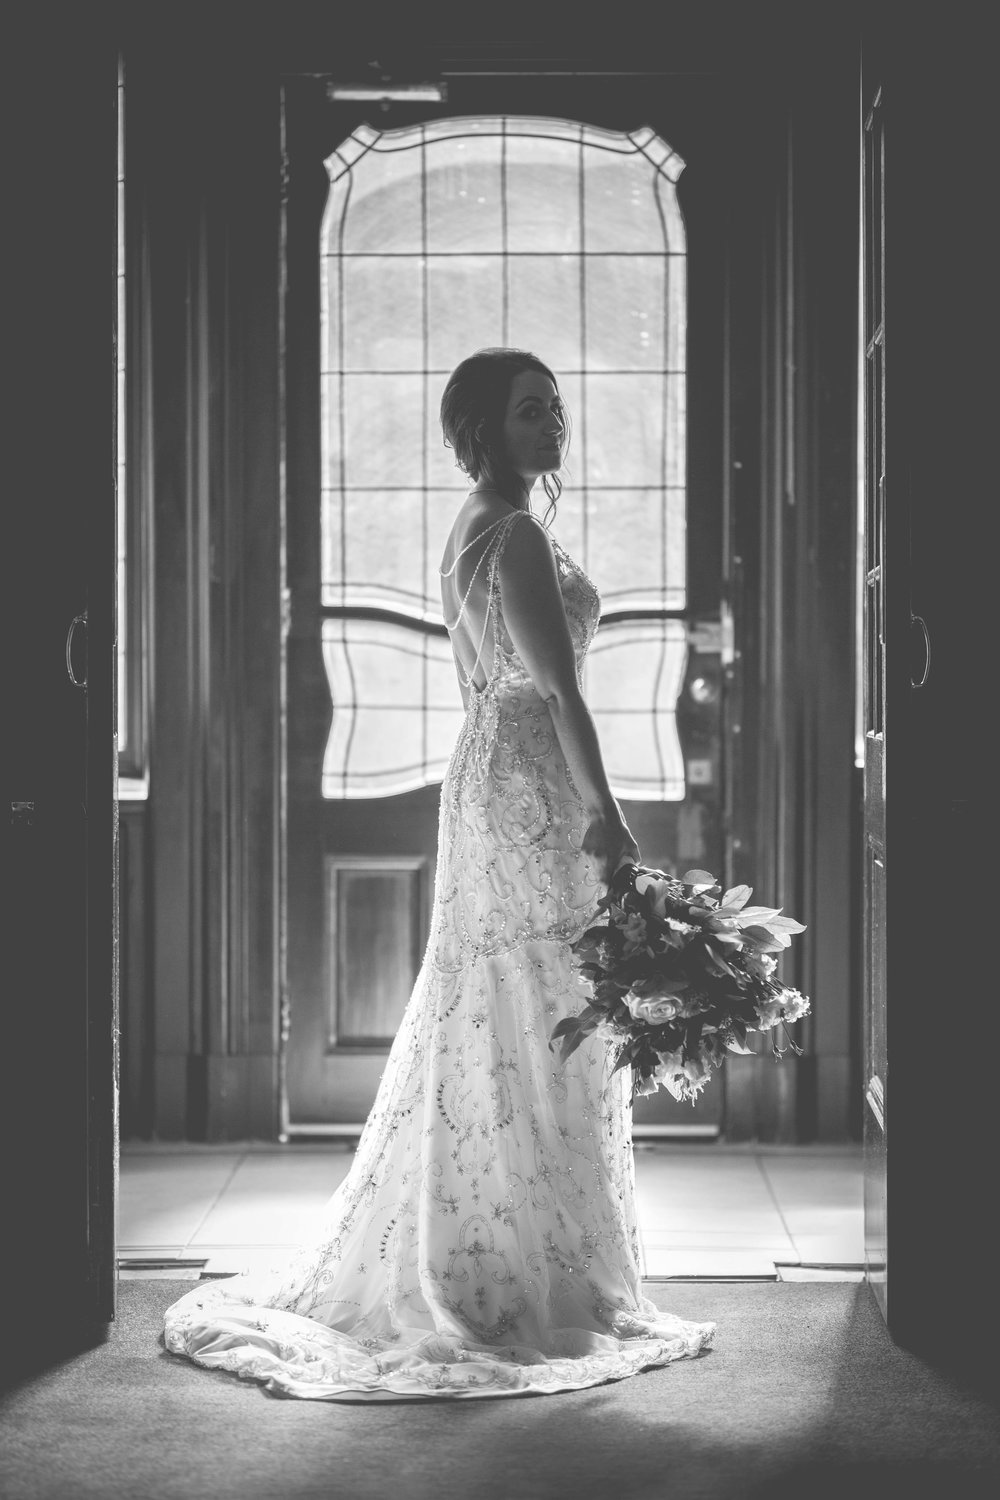 Northern Ireland Wedding Photographer | Brian McEwan Photography | Affordable Wedding Photography Throughout Antrim Down Armagh Tyrone Londonderry Derry Down Fermanagh -22.jpg